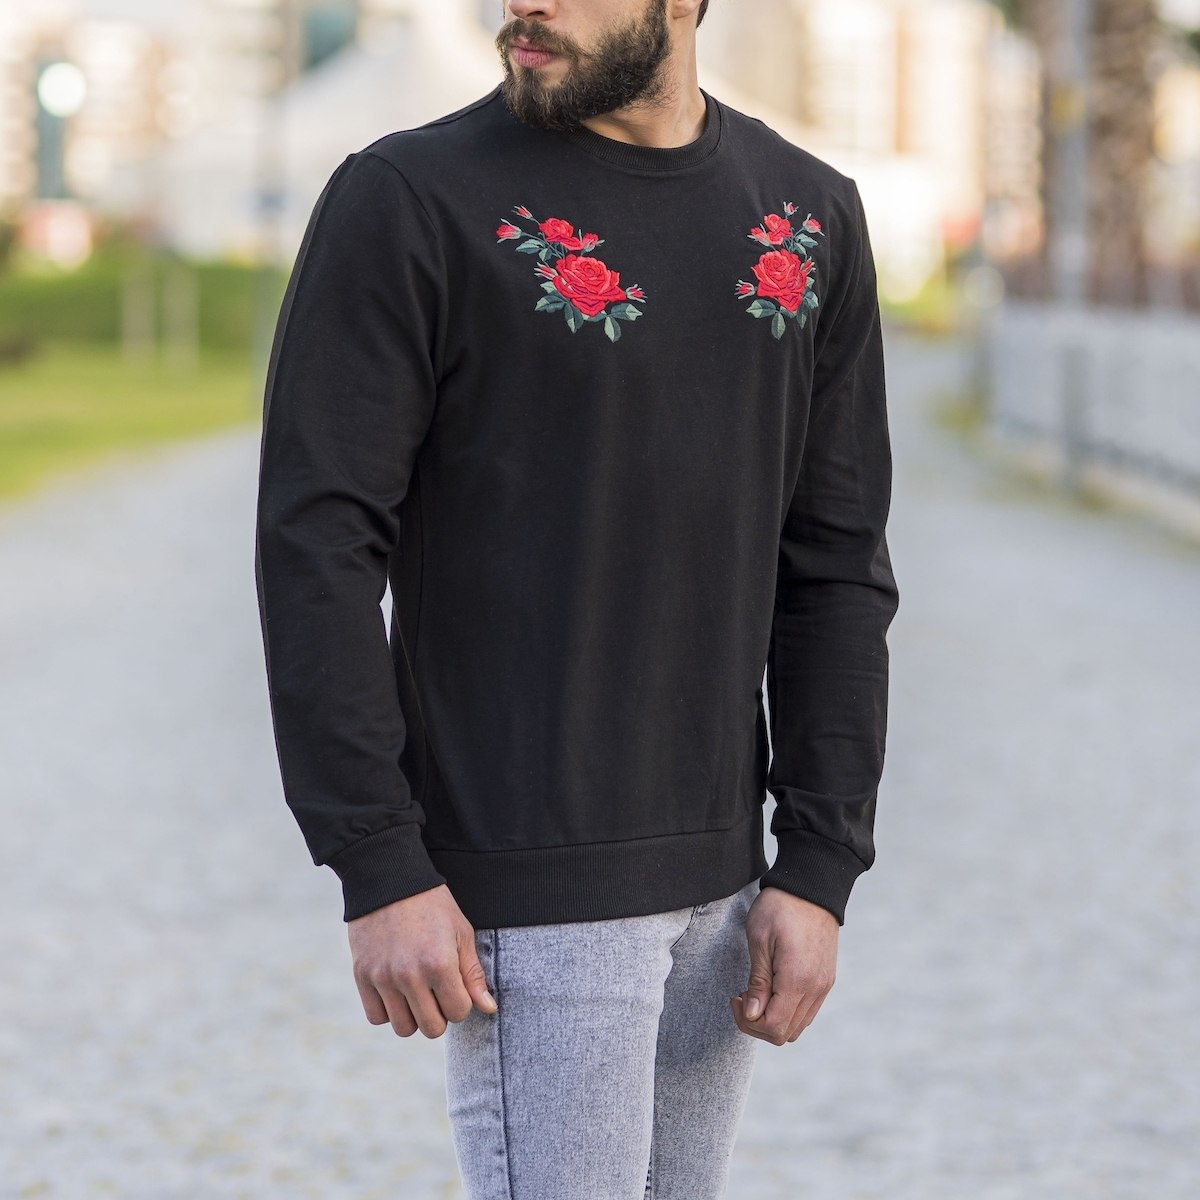 Black Sweatshirt With Rose...